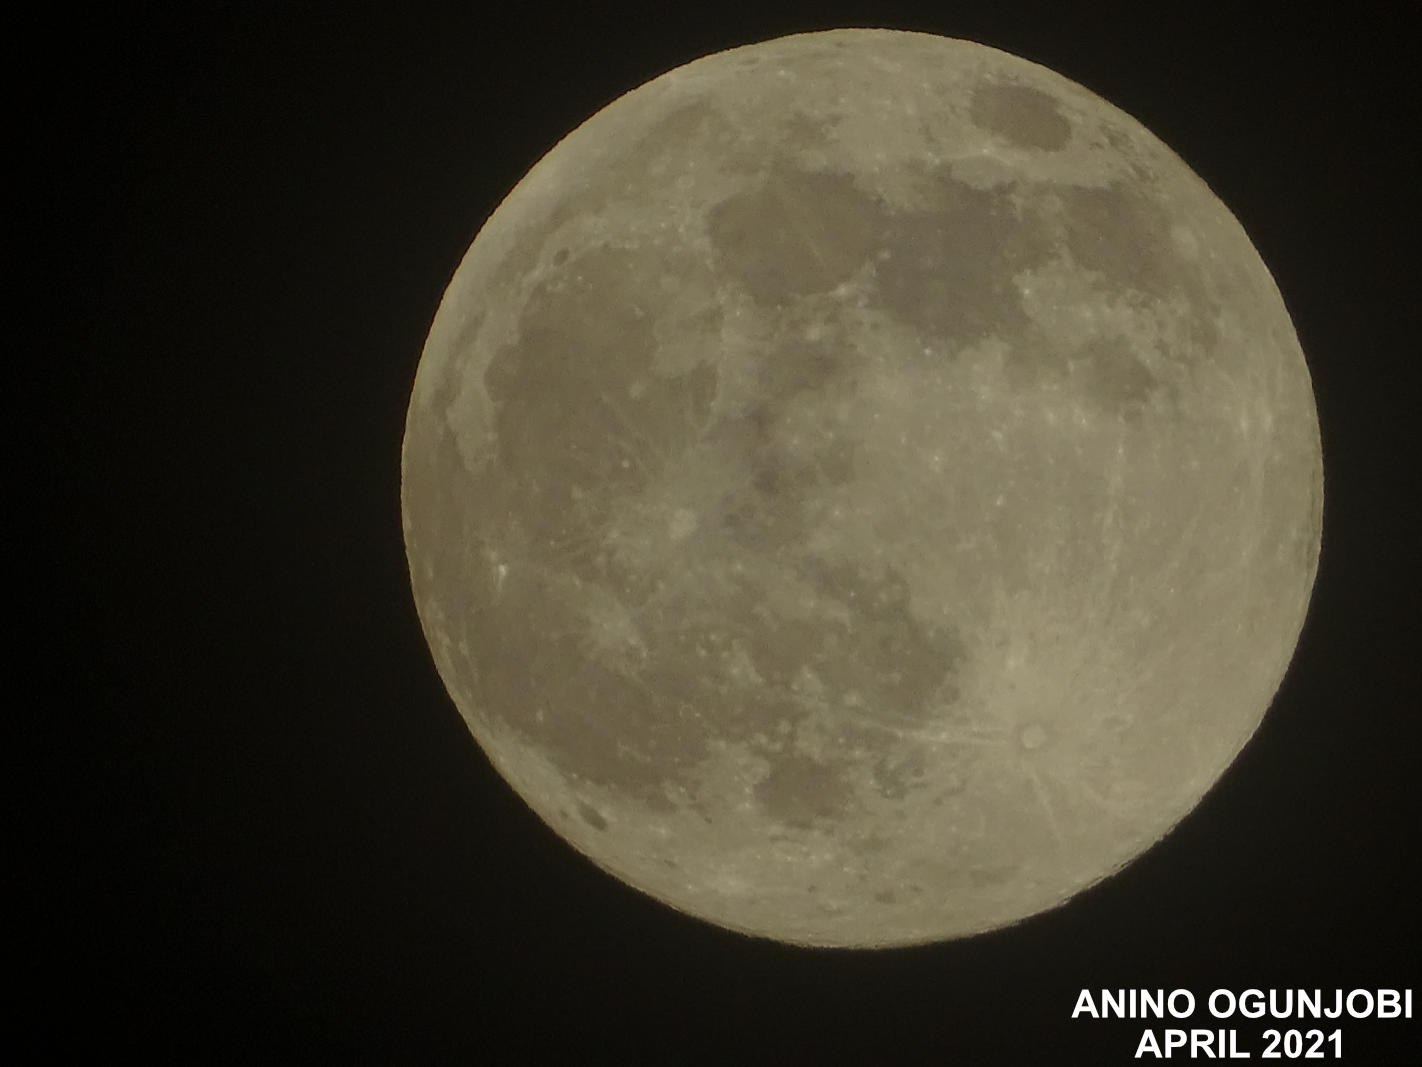 Super-Pink-Moon-April-2021-by-Anino-Ogunjobi-and-Crafters-TV